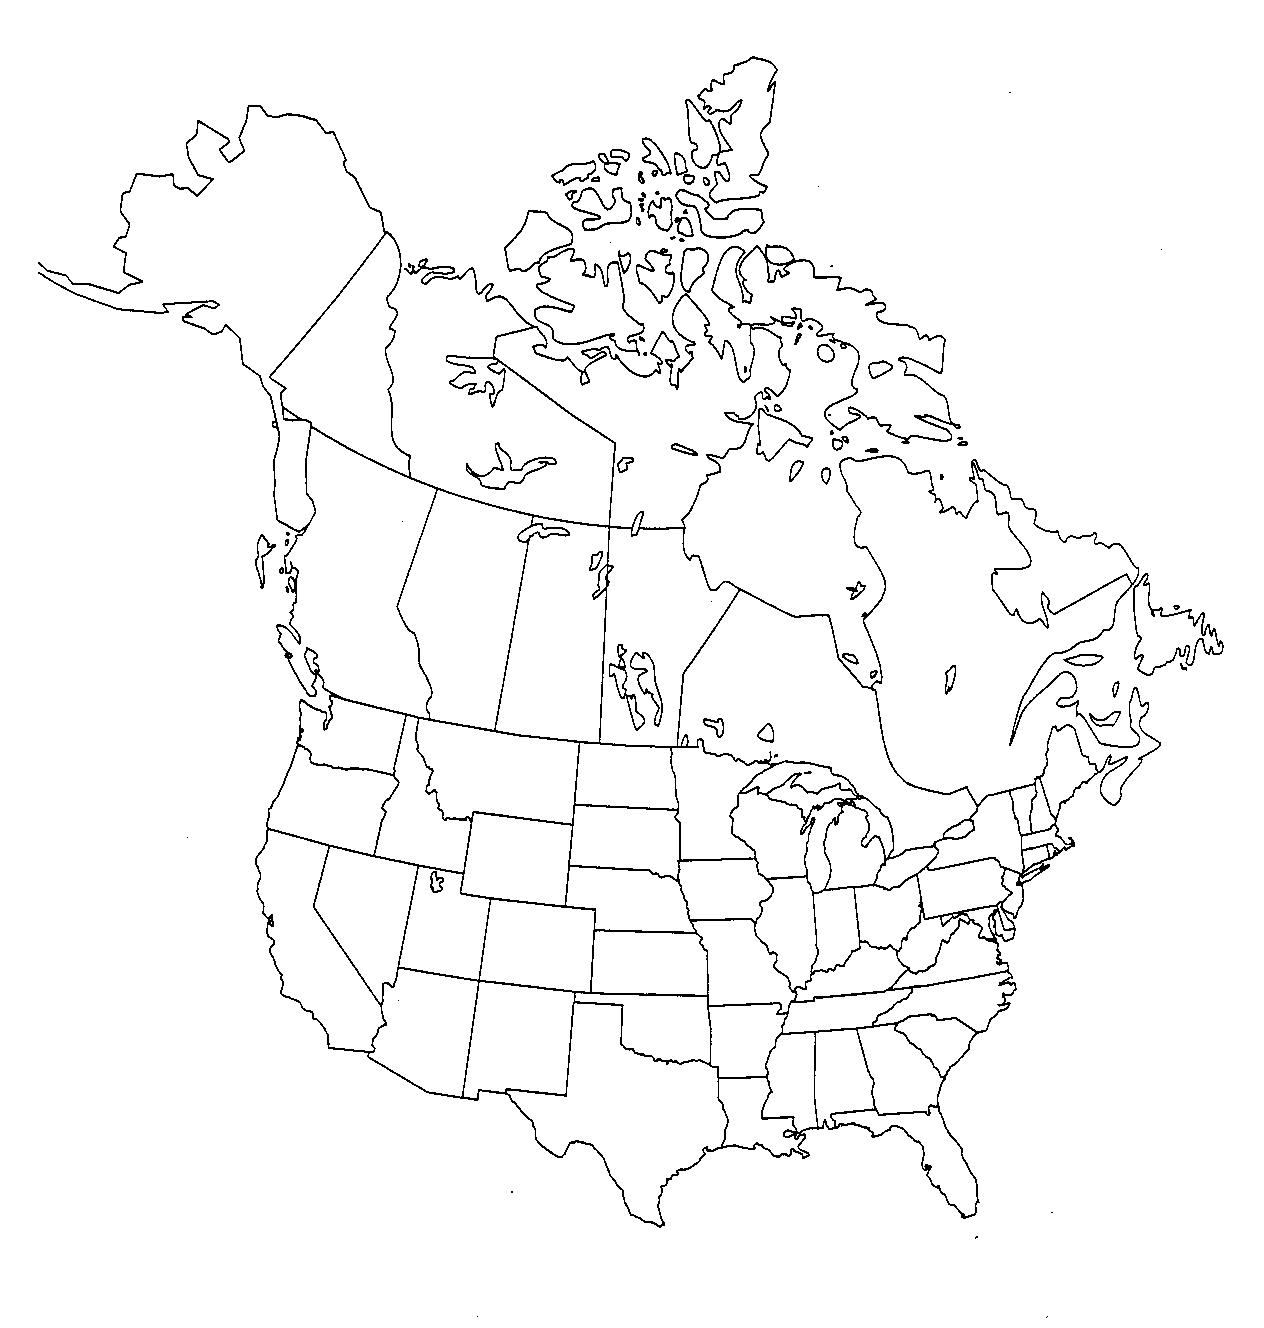 Uscanadamapjpg - United states and canada map